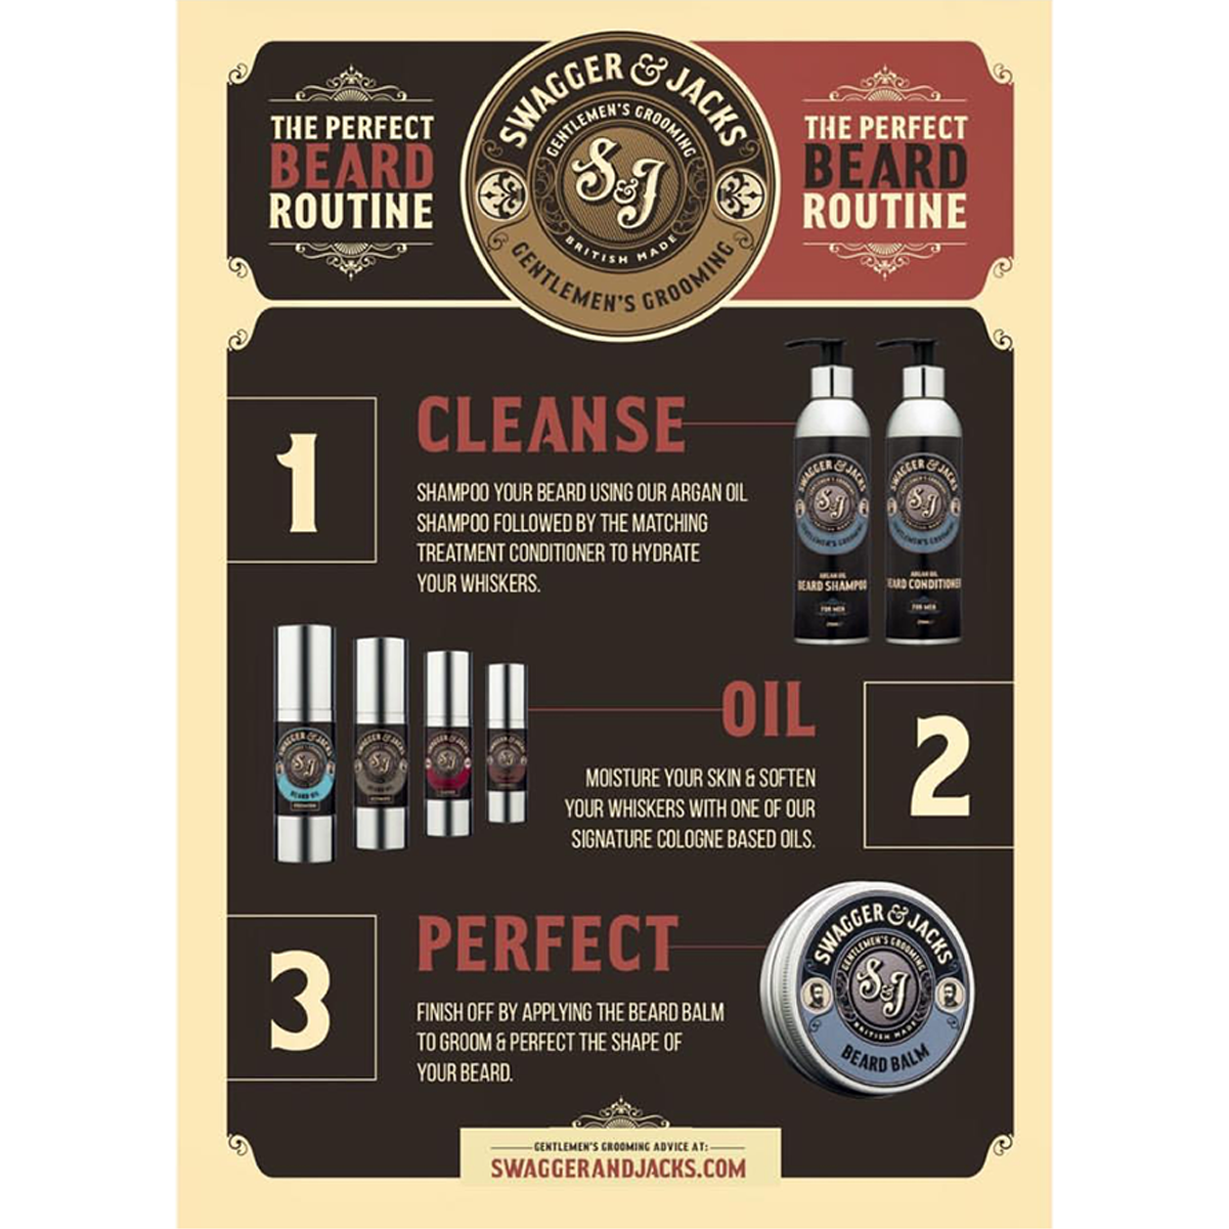 swagger jacks beard grooming routine sat on my butt. Black Bedroom Furniture Sets. Home Design Ideas